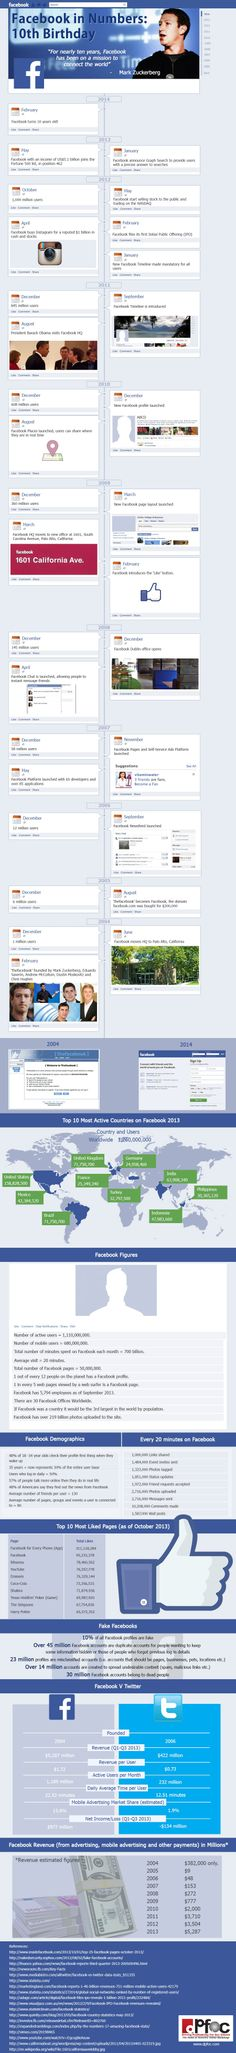 instantShift - 10 Years of Facebook in Numbers